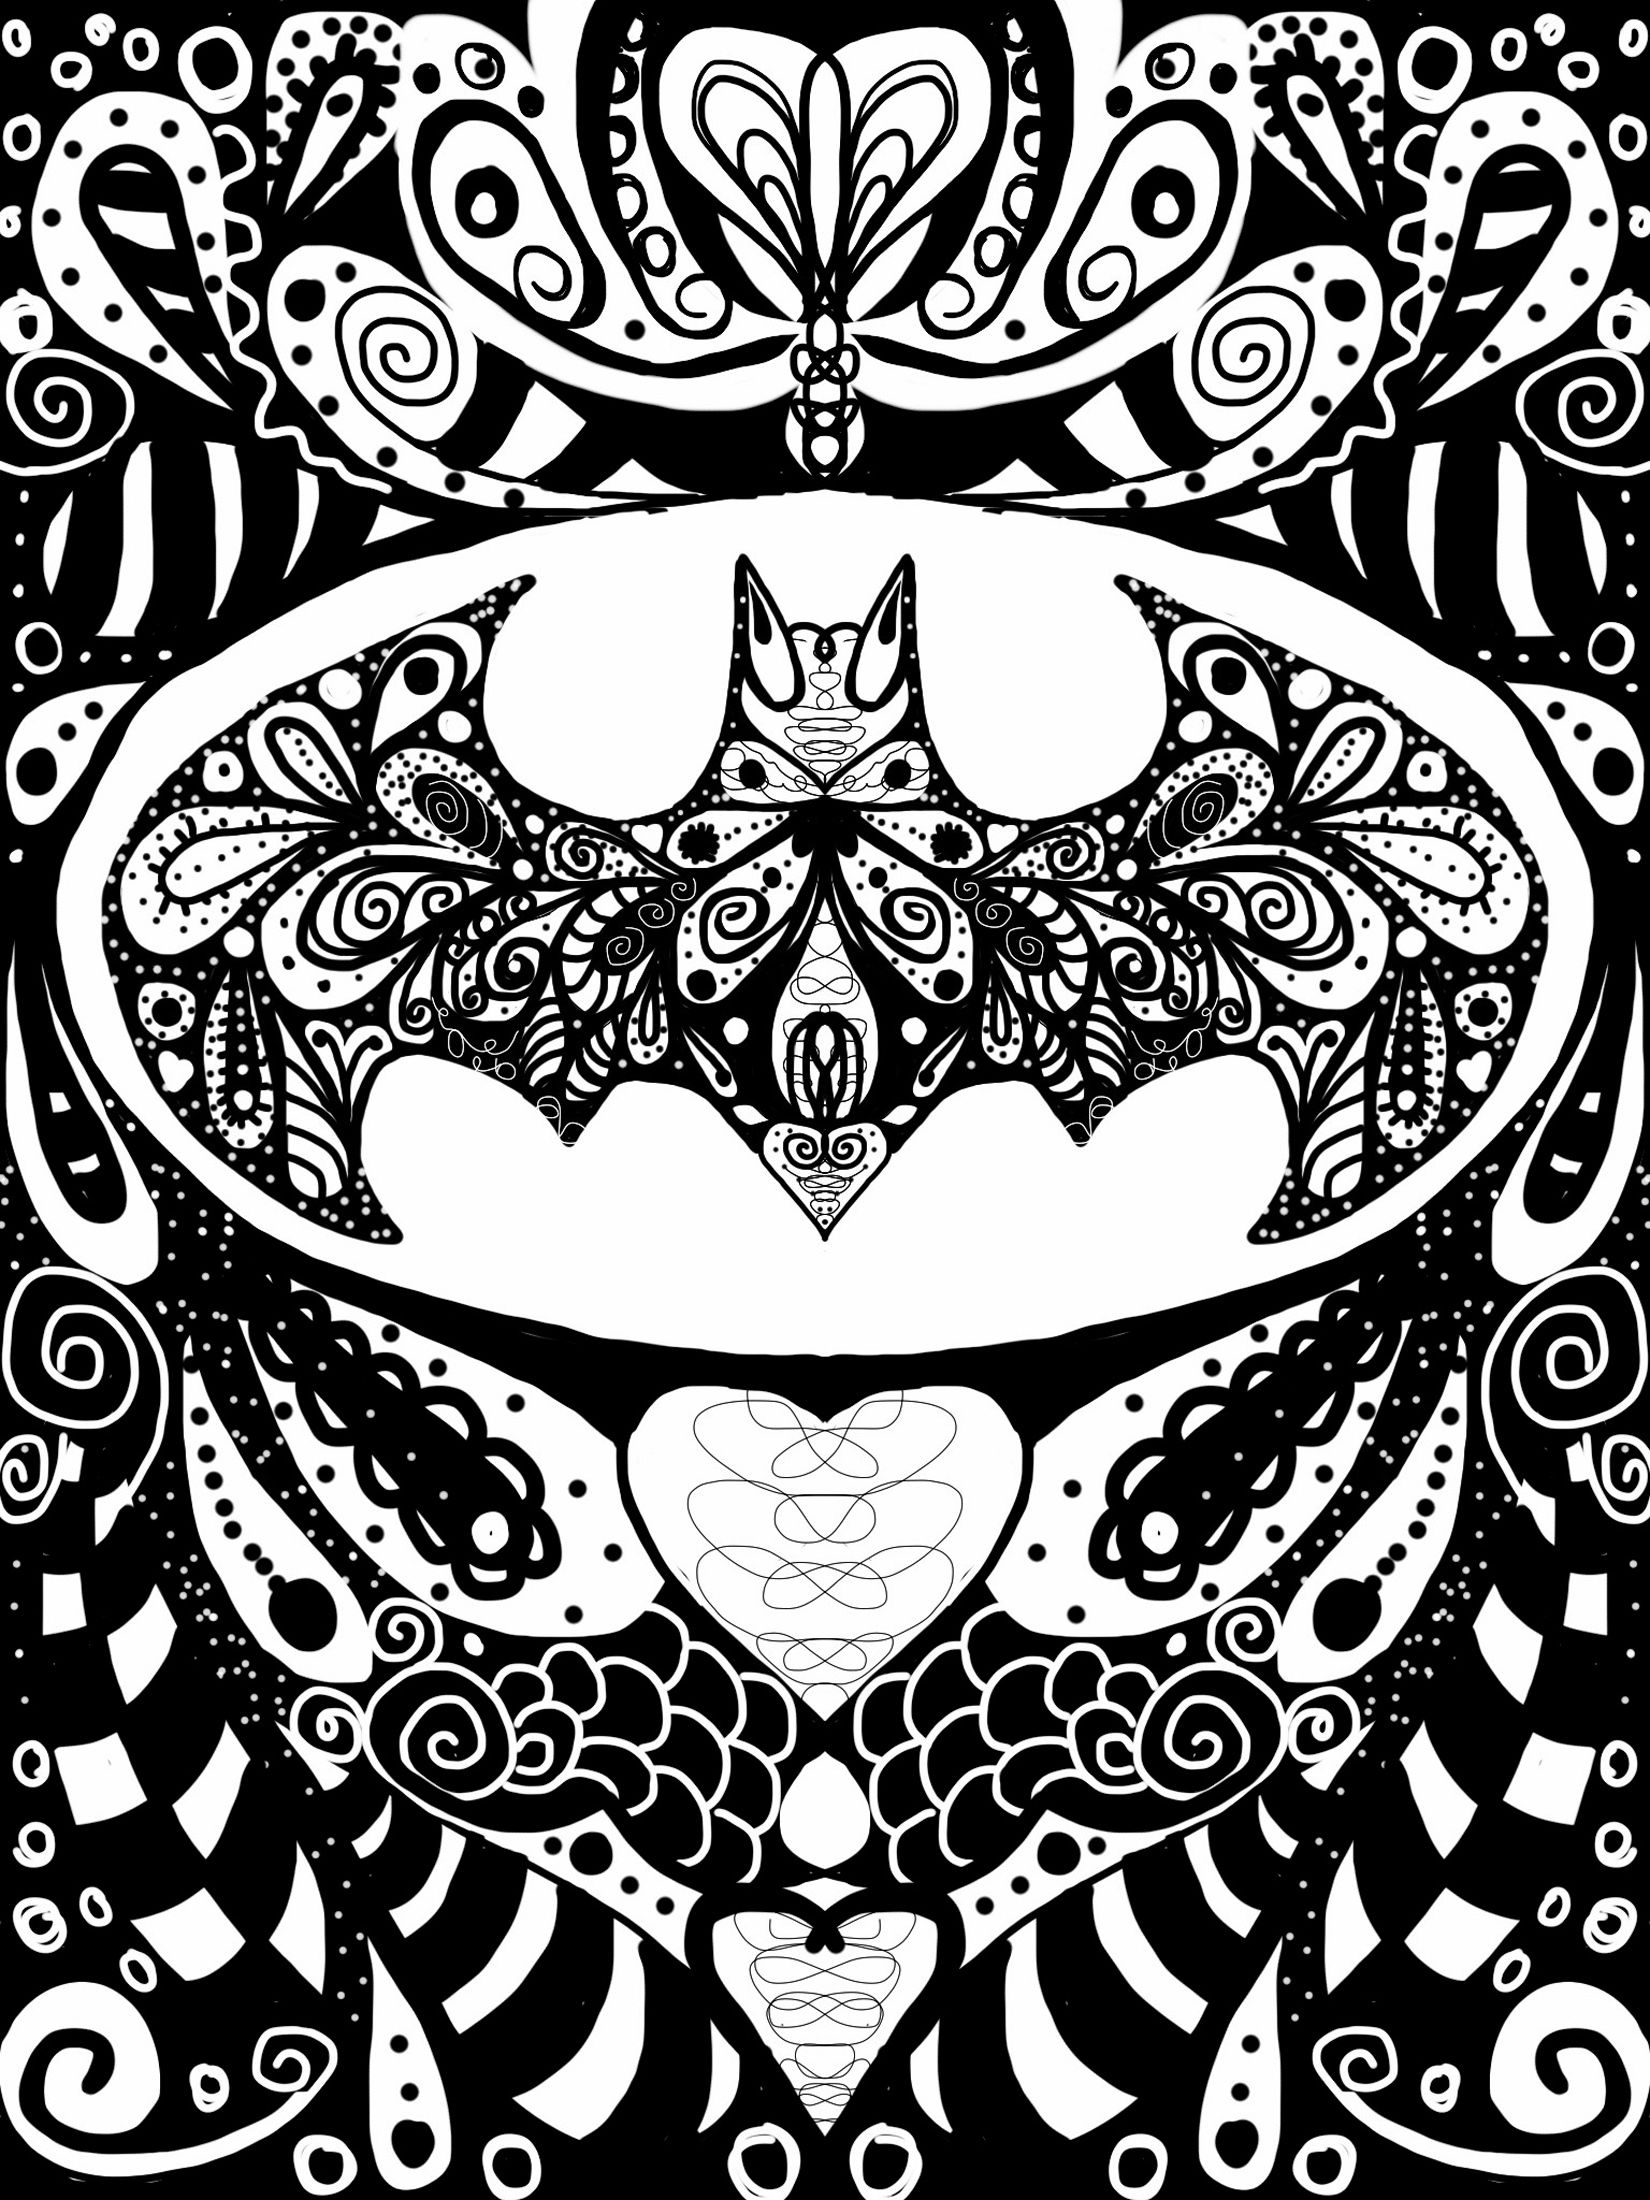 Batman Doodles And Zentangle Pinterest Batman Fan Art Batman